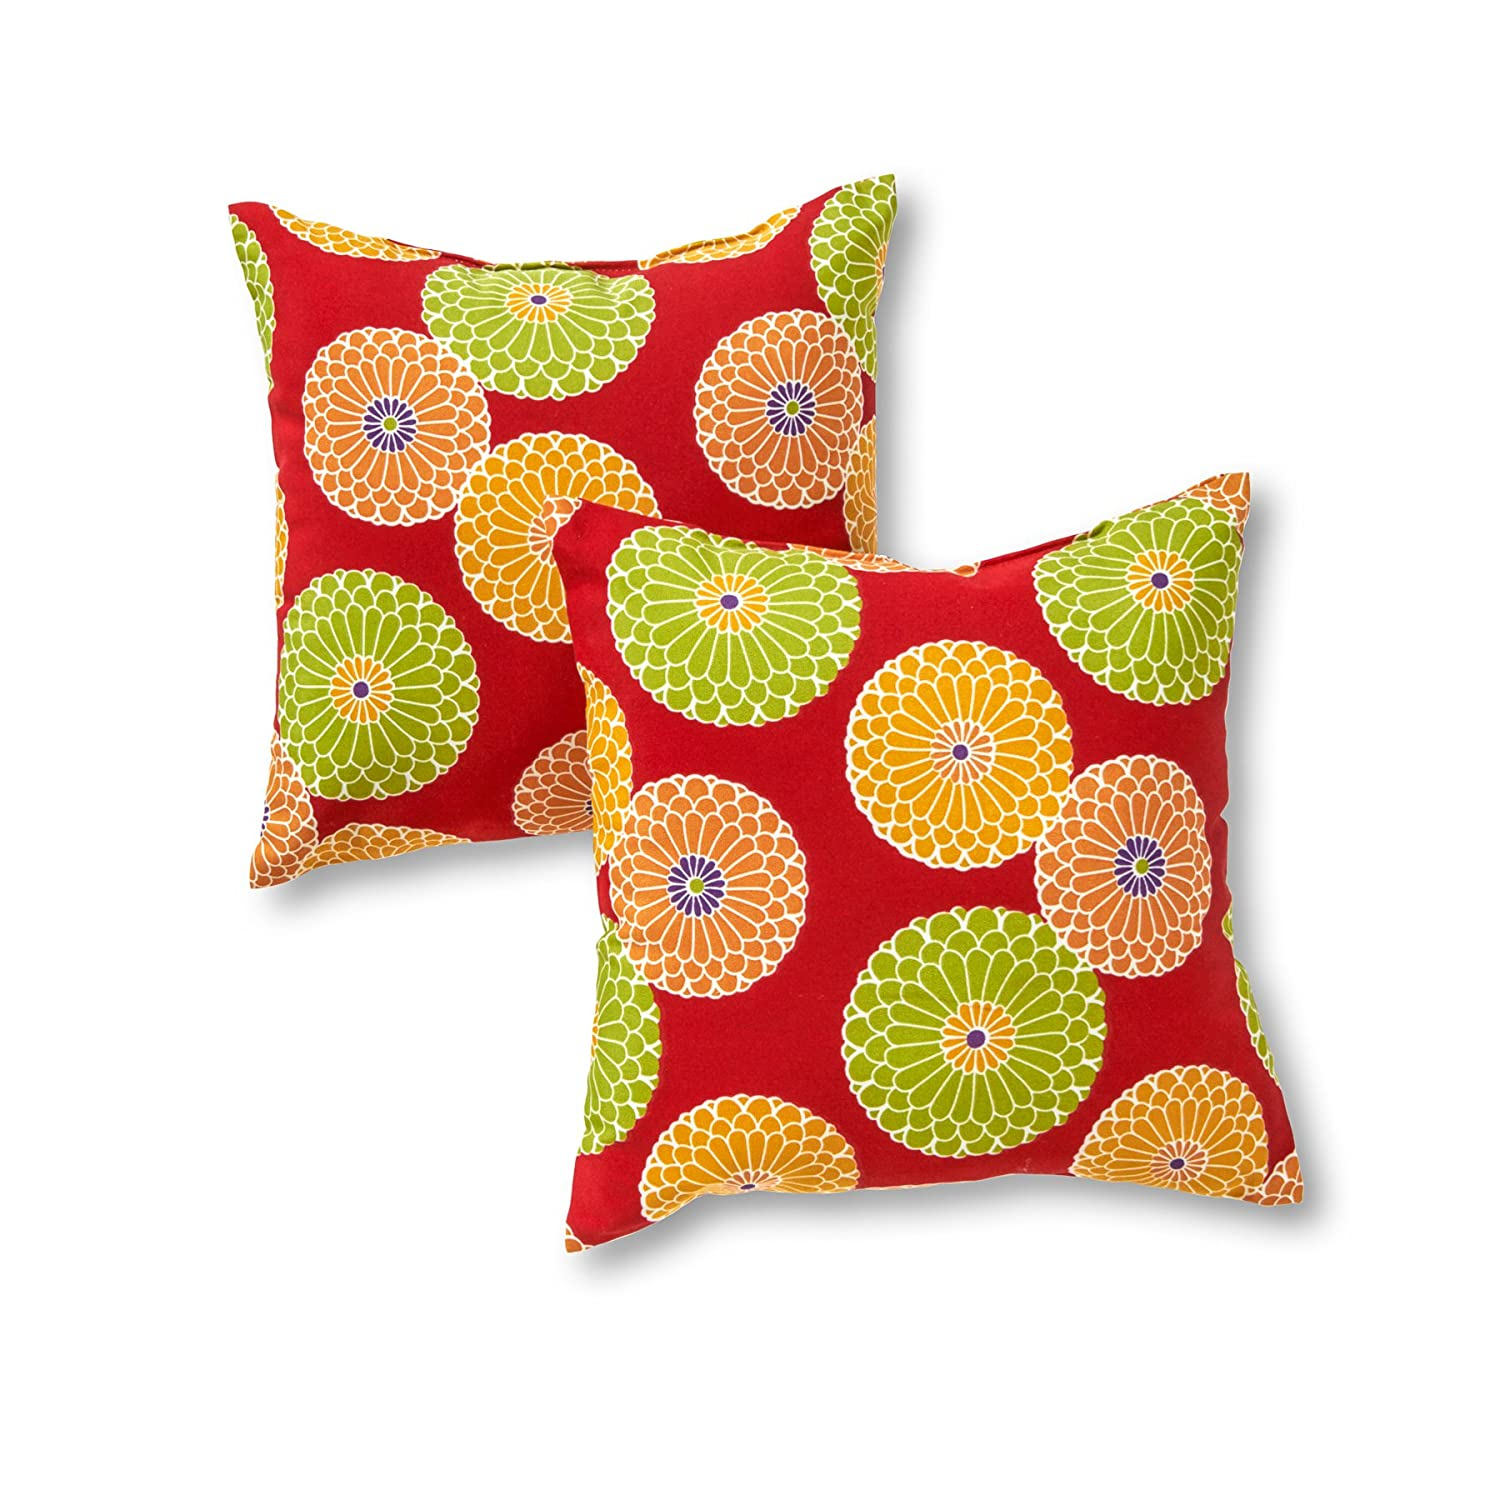 Designer Accent Pillows Of Home Indoor Outdoor Accent Pillows Decorative Designer